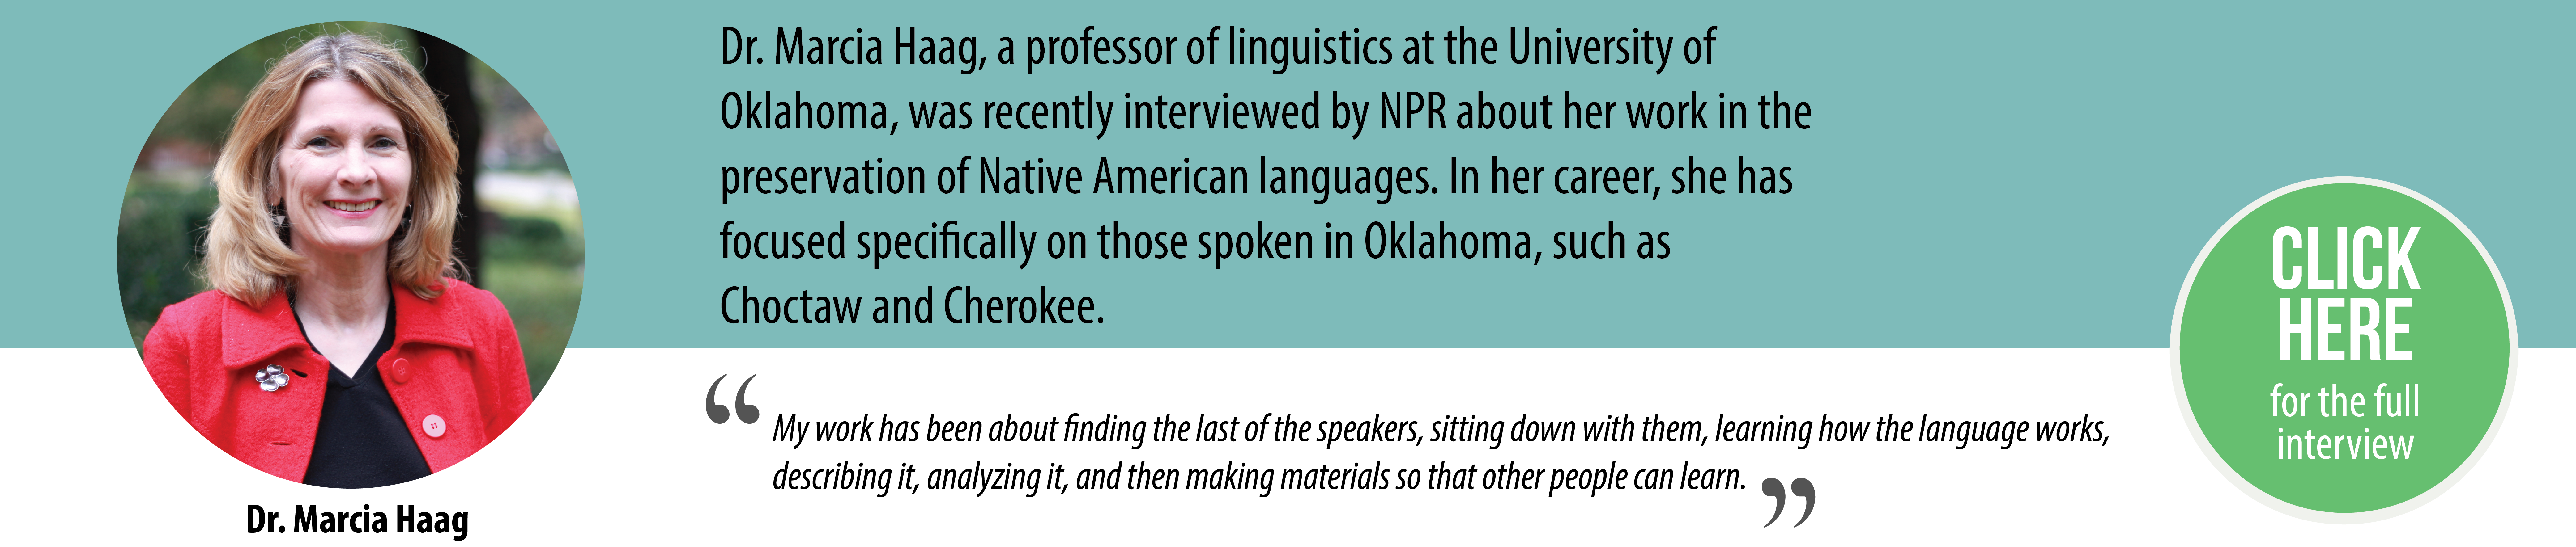 "Dr. Marcia Haag, a professor of linguistics at the University of Oklahoma, was recently interviewed by NPR about her work in the preservation of Native American languages. In her career, she has focused specifically on those spoken in Oklahoma, such Choctaw and Cherokee. ""My work has been about finding the last of the speakers, sitting down with them, learning how the language works, describing it, analyzing it, and then making materials so that other people can learn."""